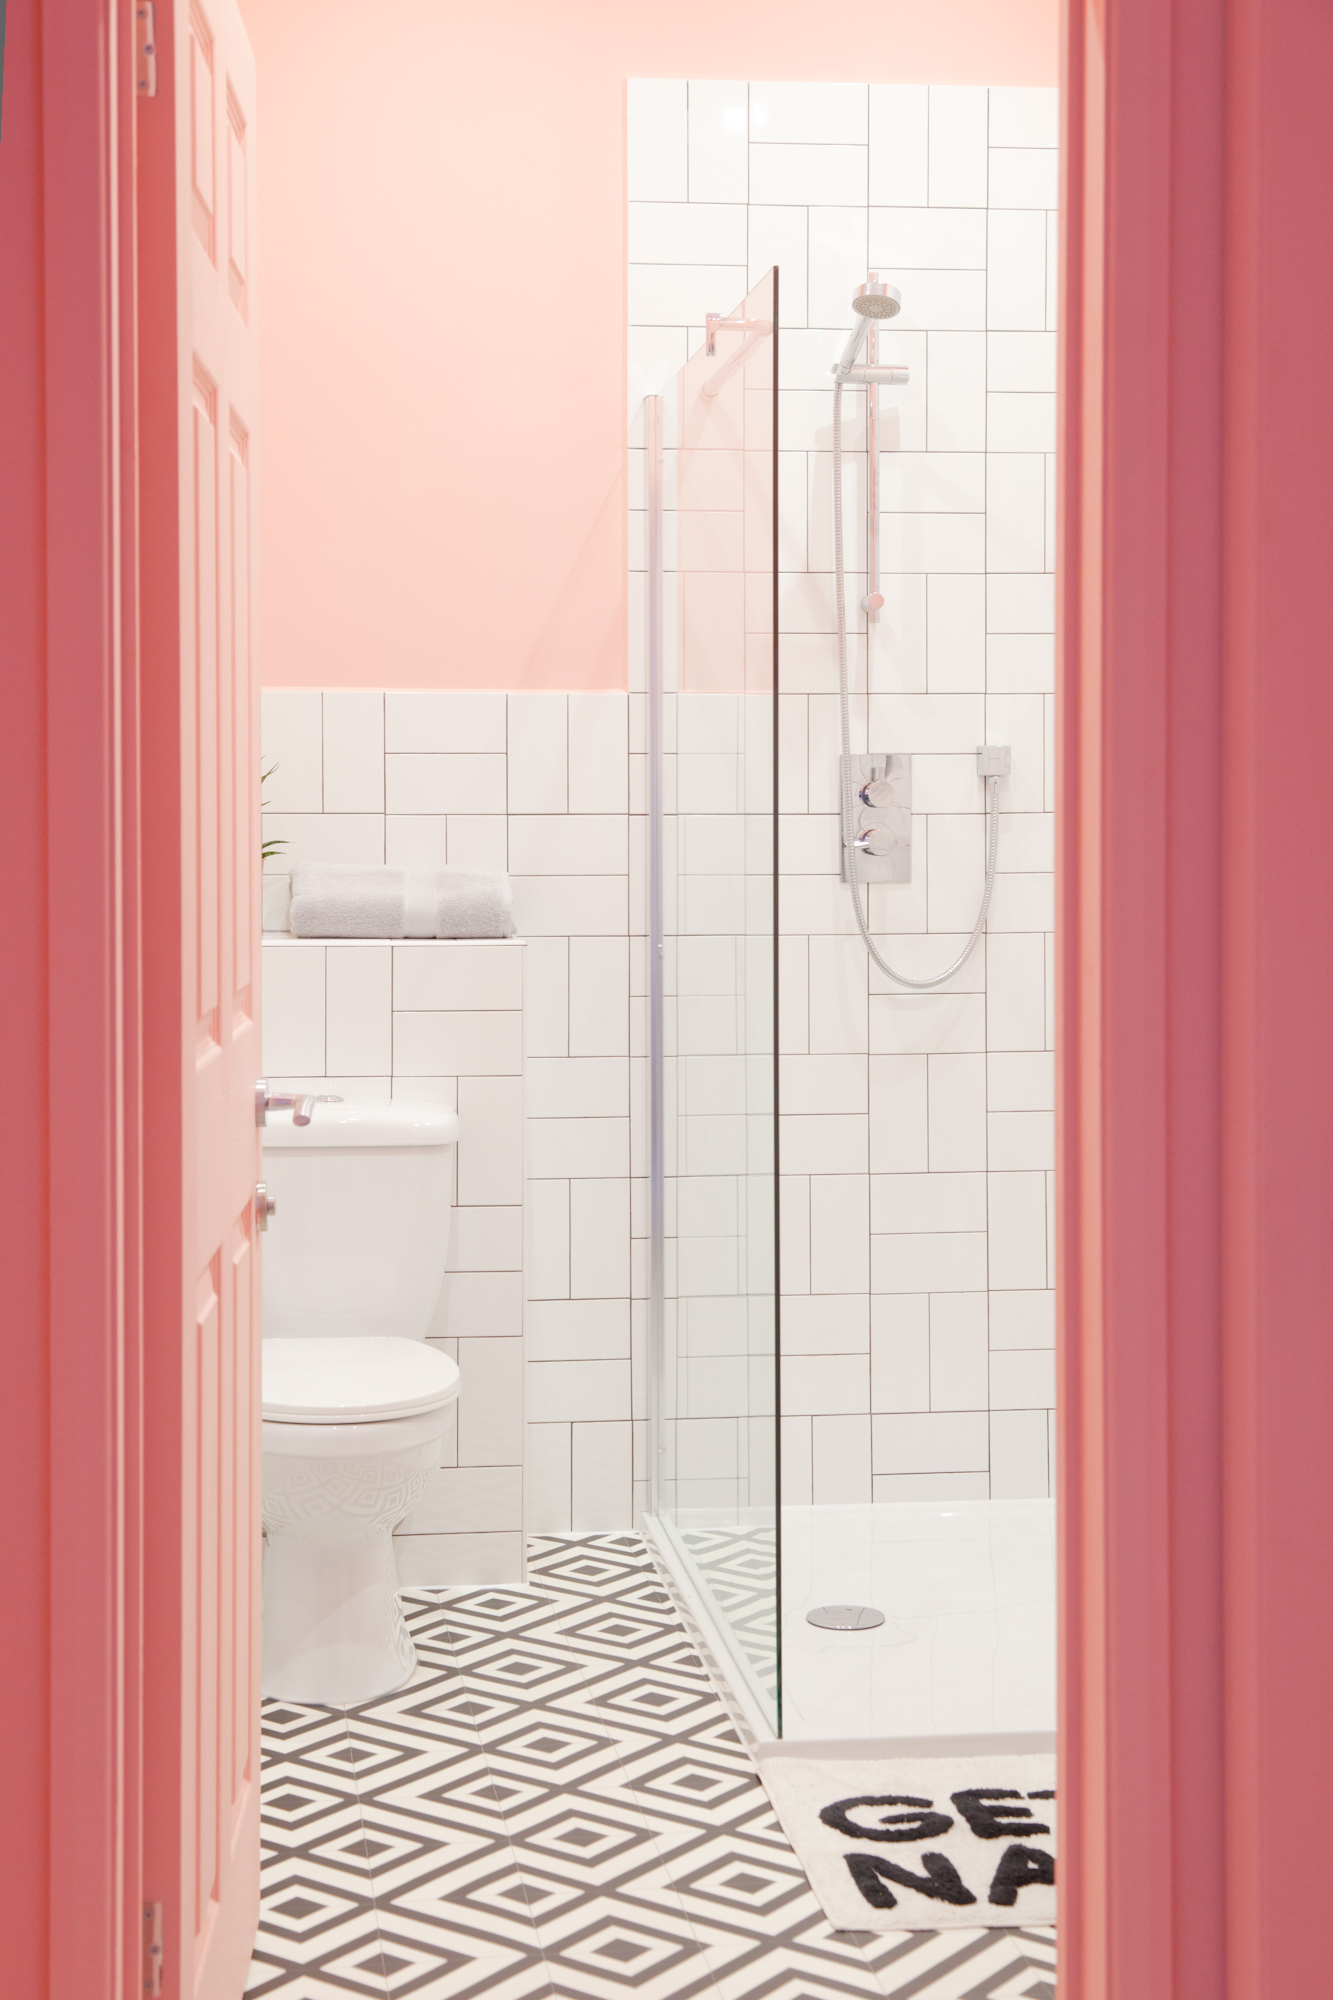 This pink bathroom with gold accents was a big hit! The simple white subway tiles are laid in an interesting pattern to create a fresh new look.